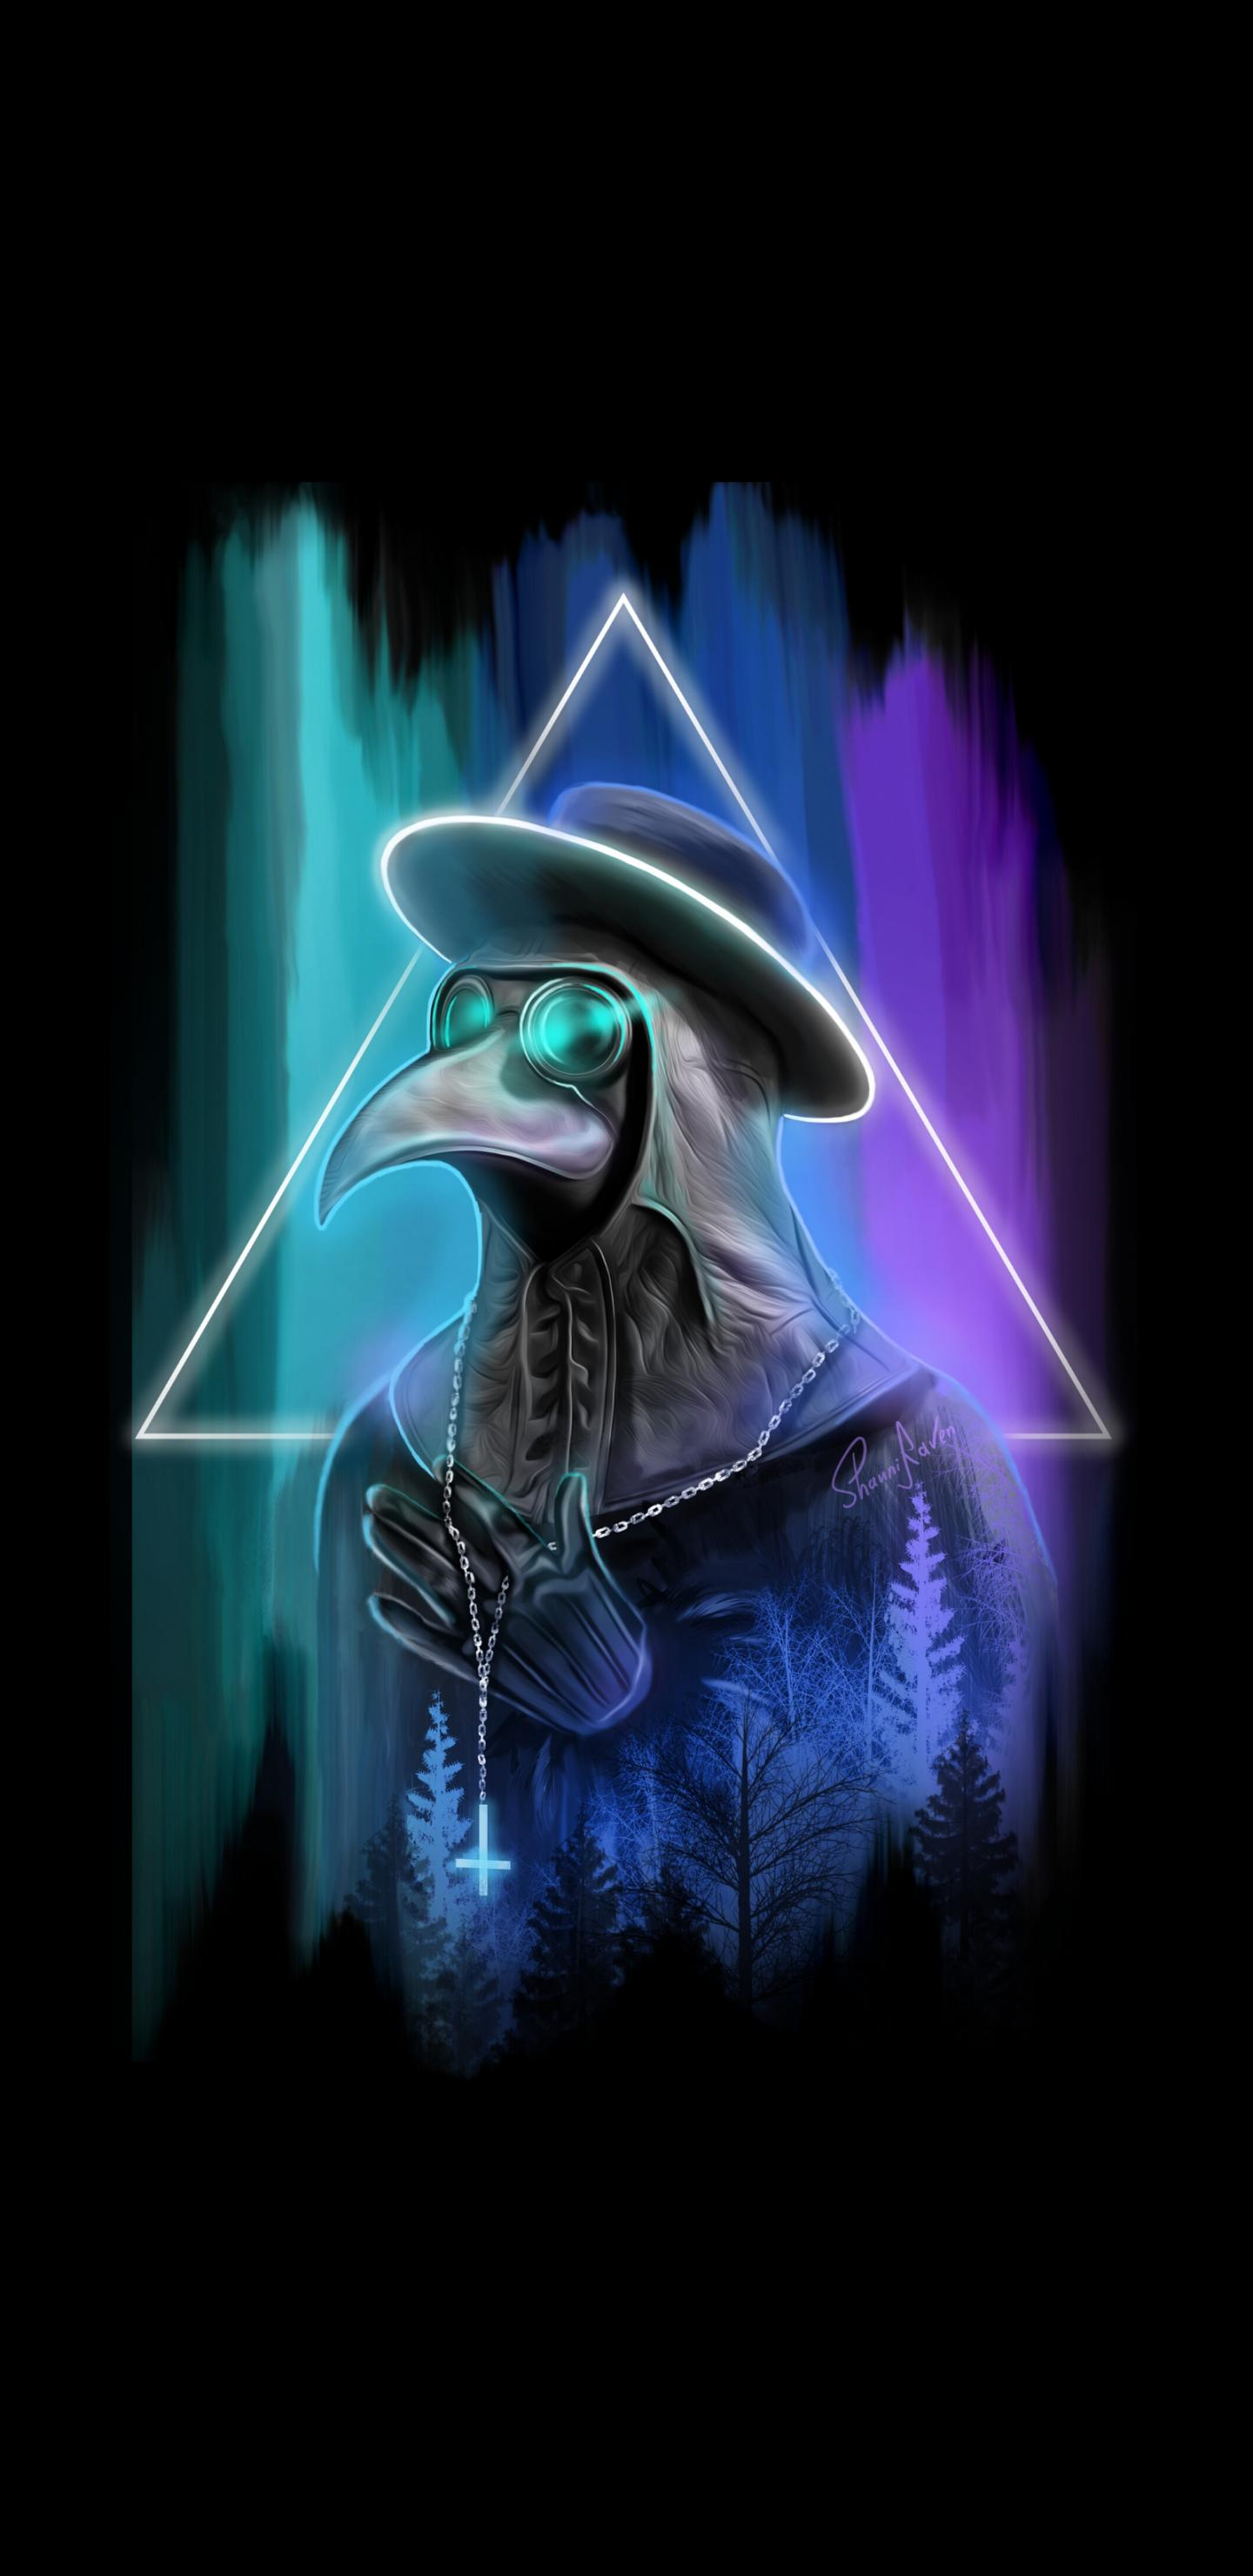 Plague Doctor Wallpaper 1920x1080 Posted By Christopher Simpson